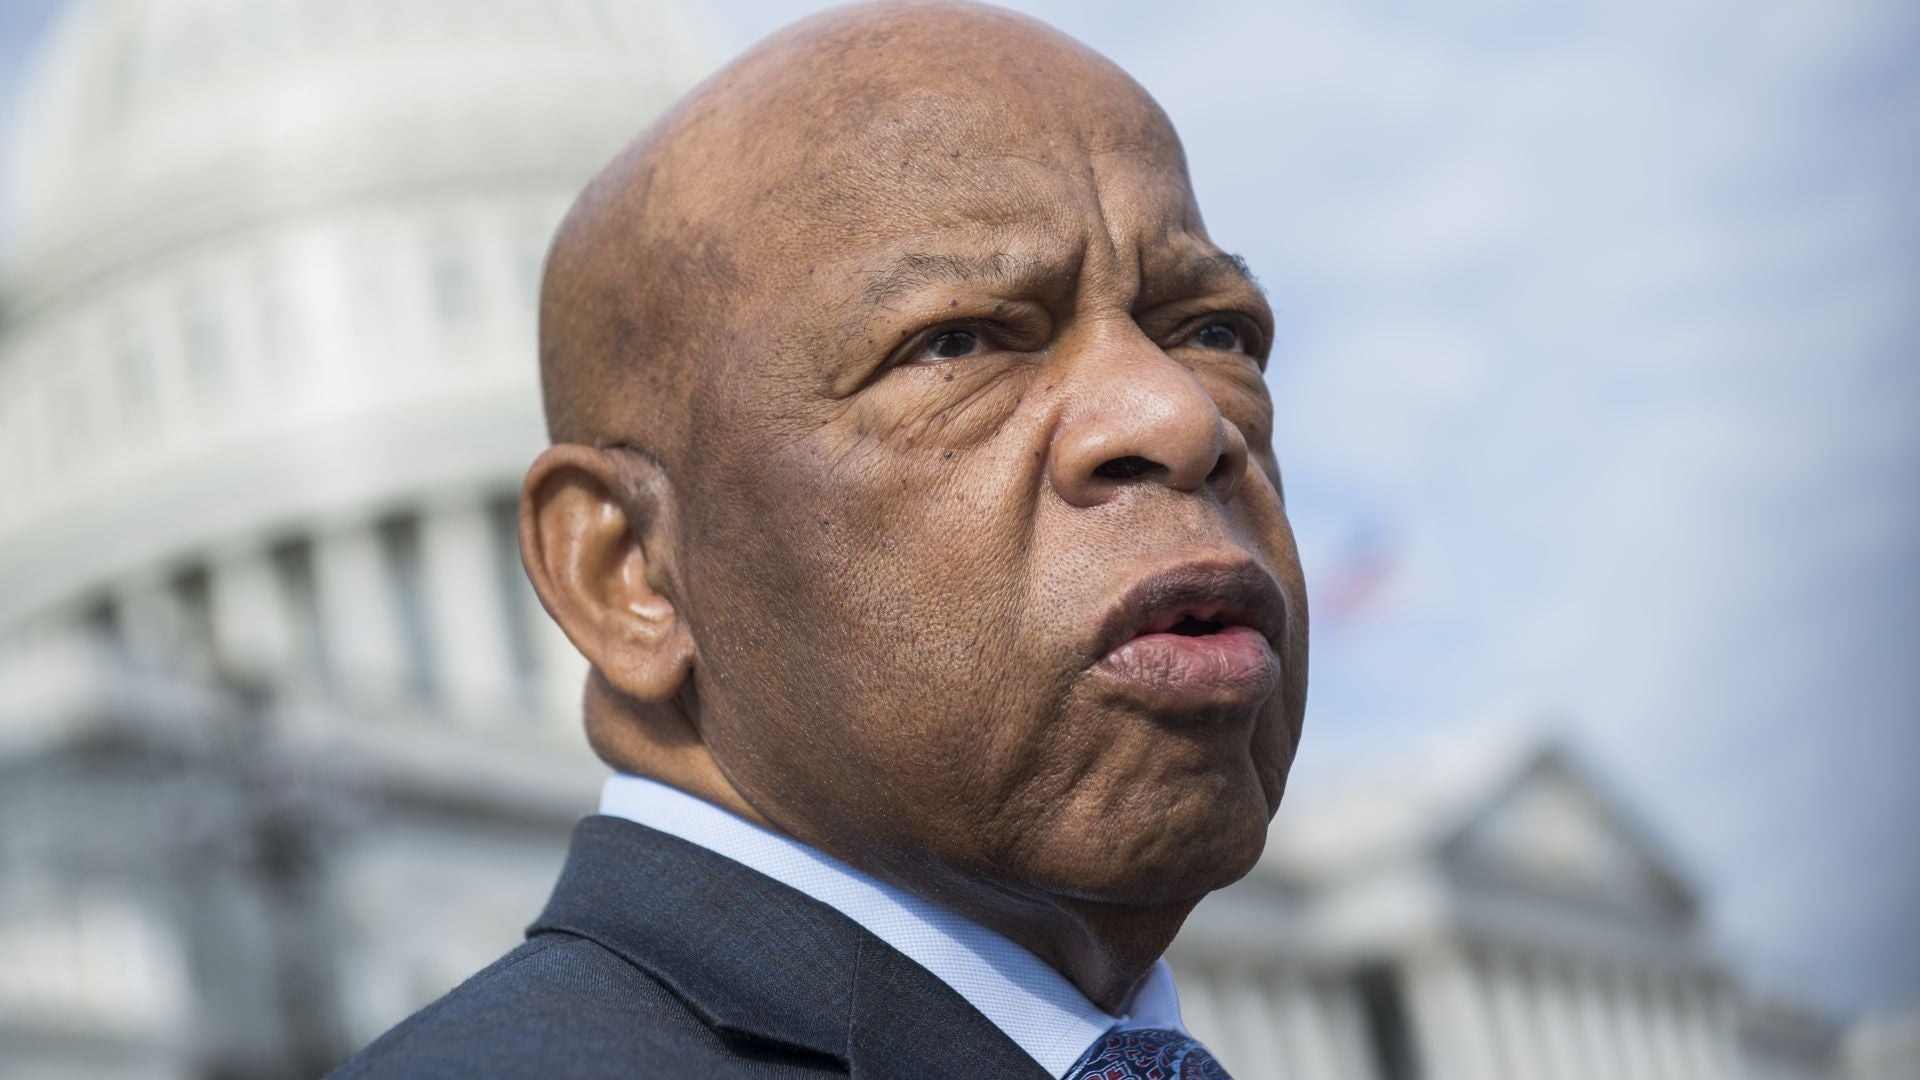 Rep. John Lewis Urges Americans To 'Stand Up For What You Truly Believe' In Posthumous Op-Ed